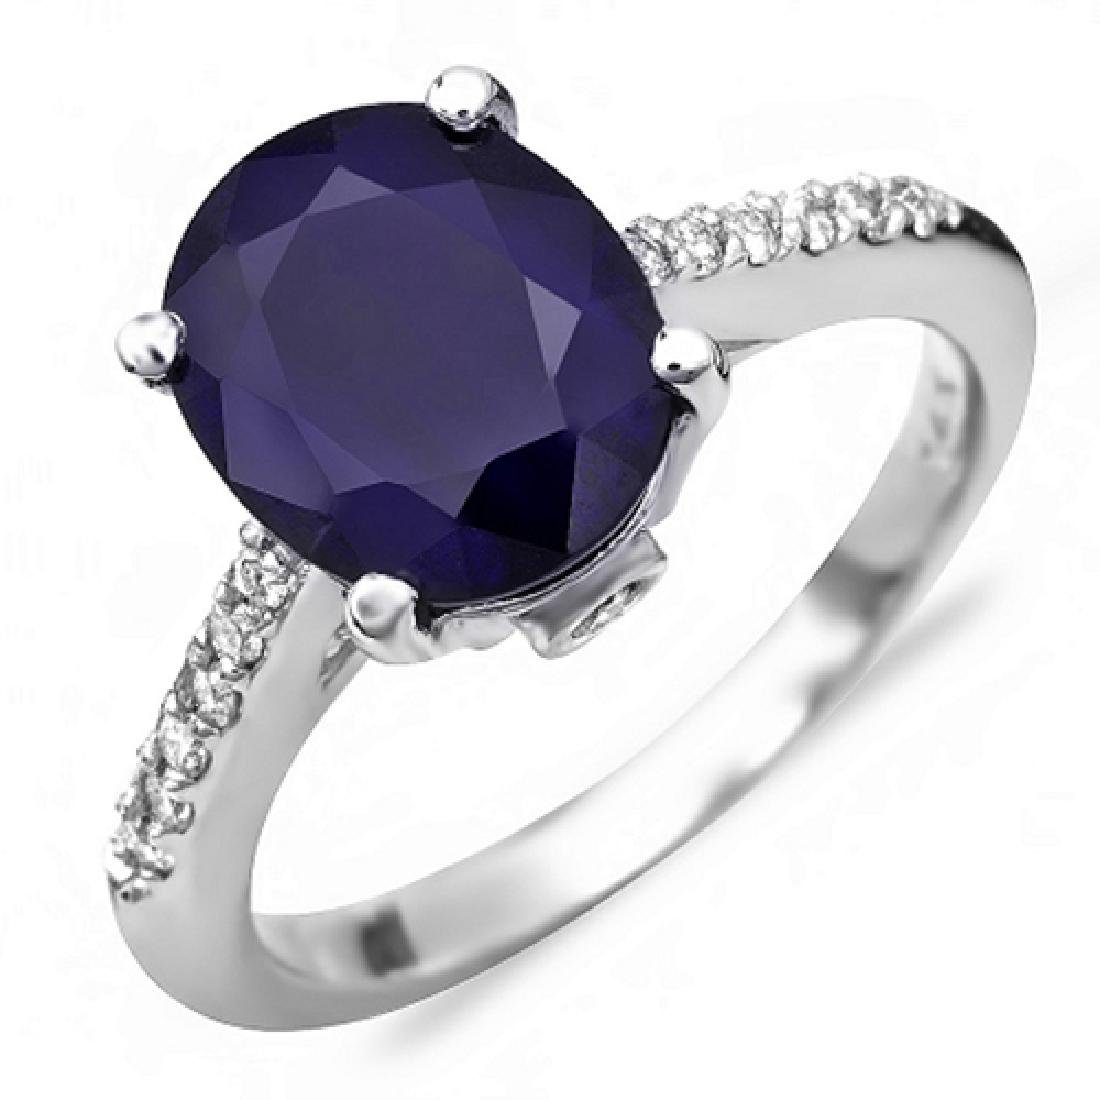 3.70 Carat Natural Sapphire 18K Solid White Gold